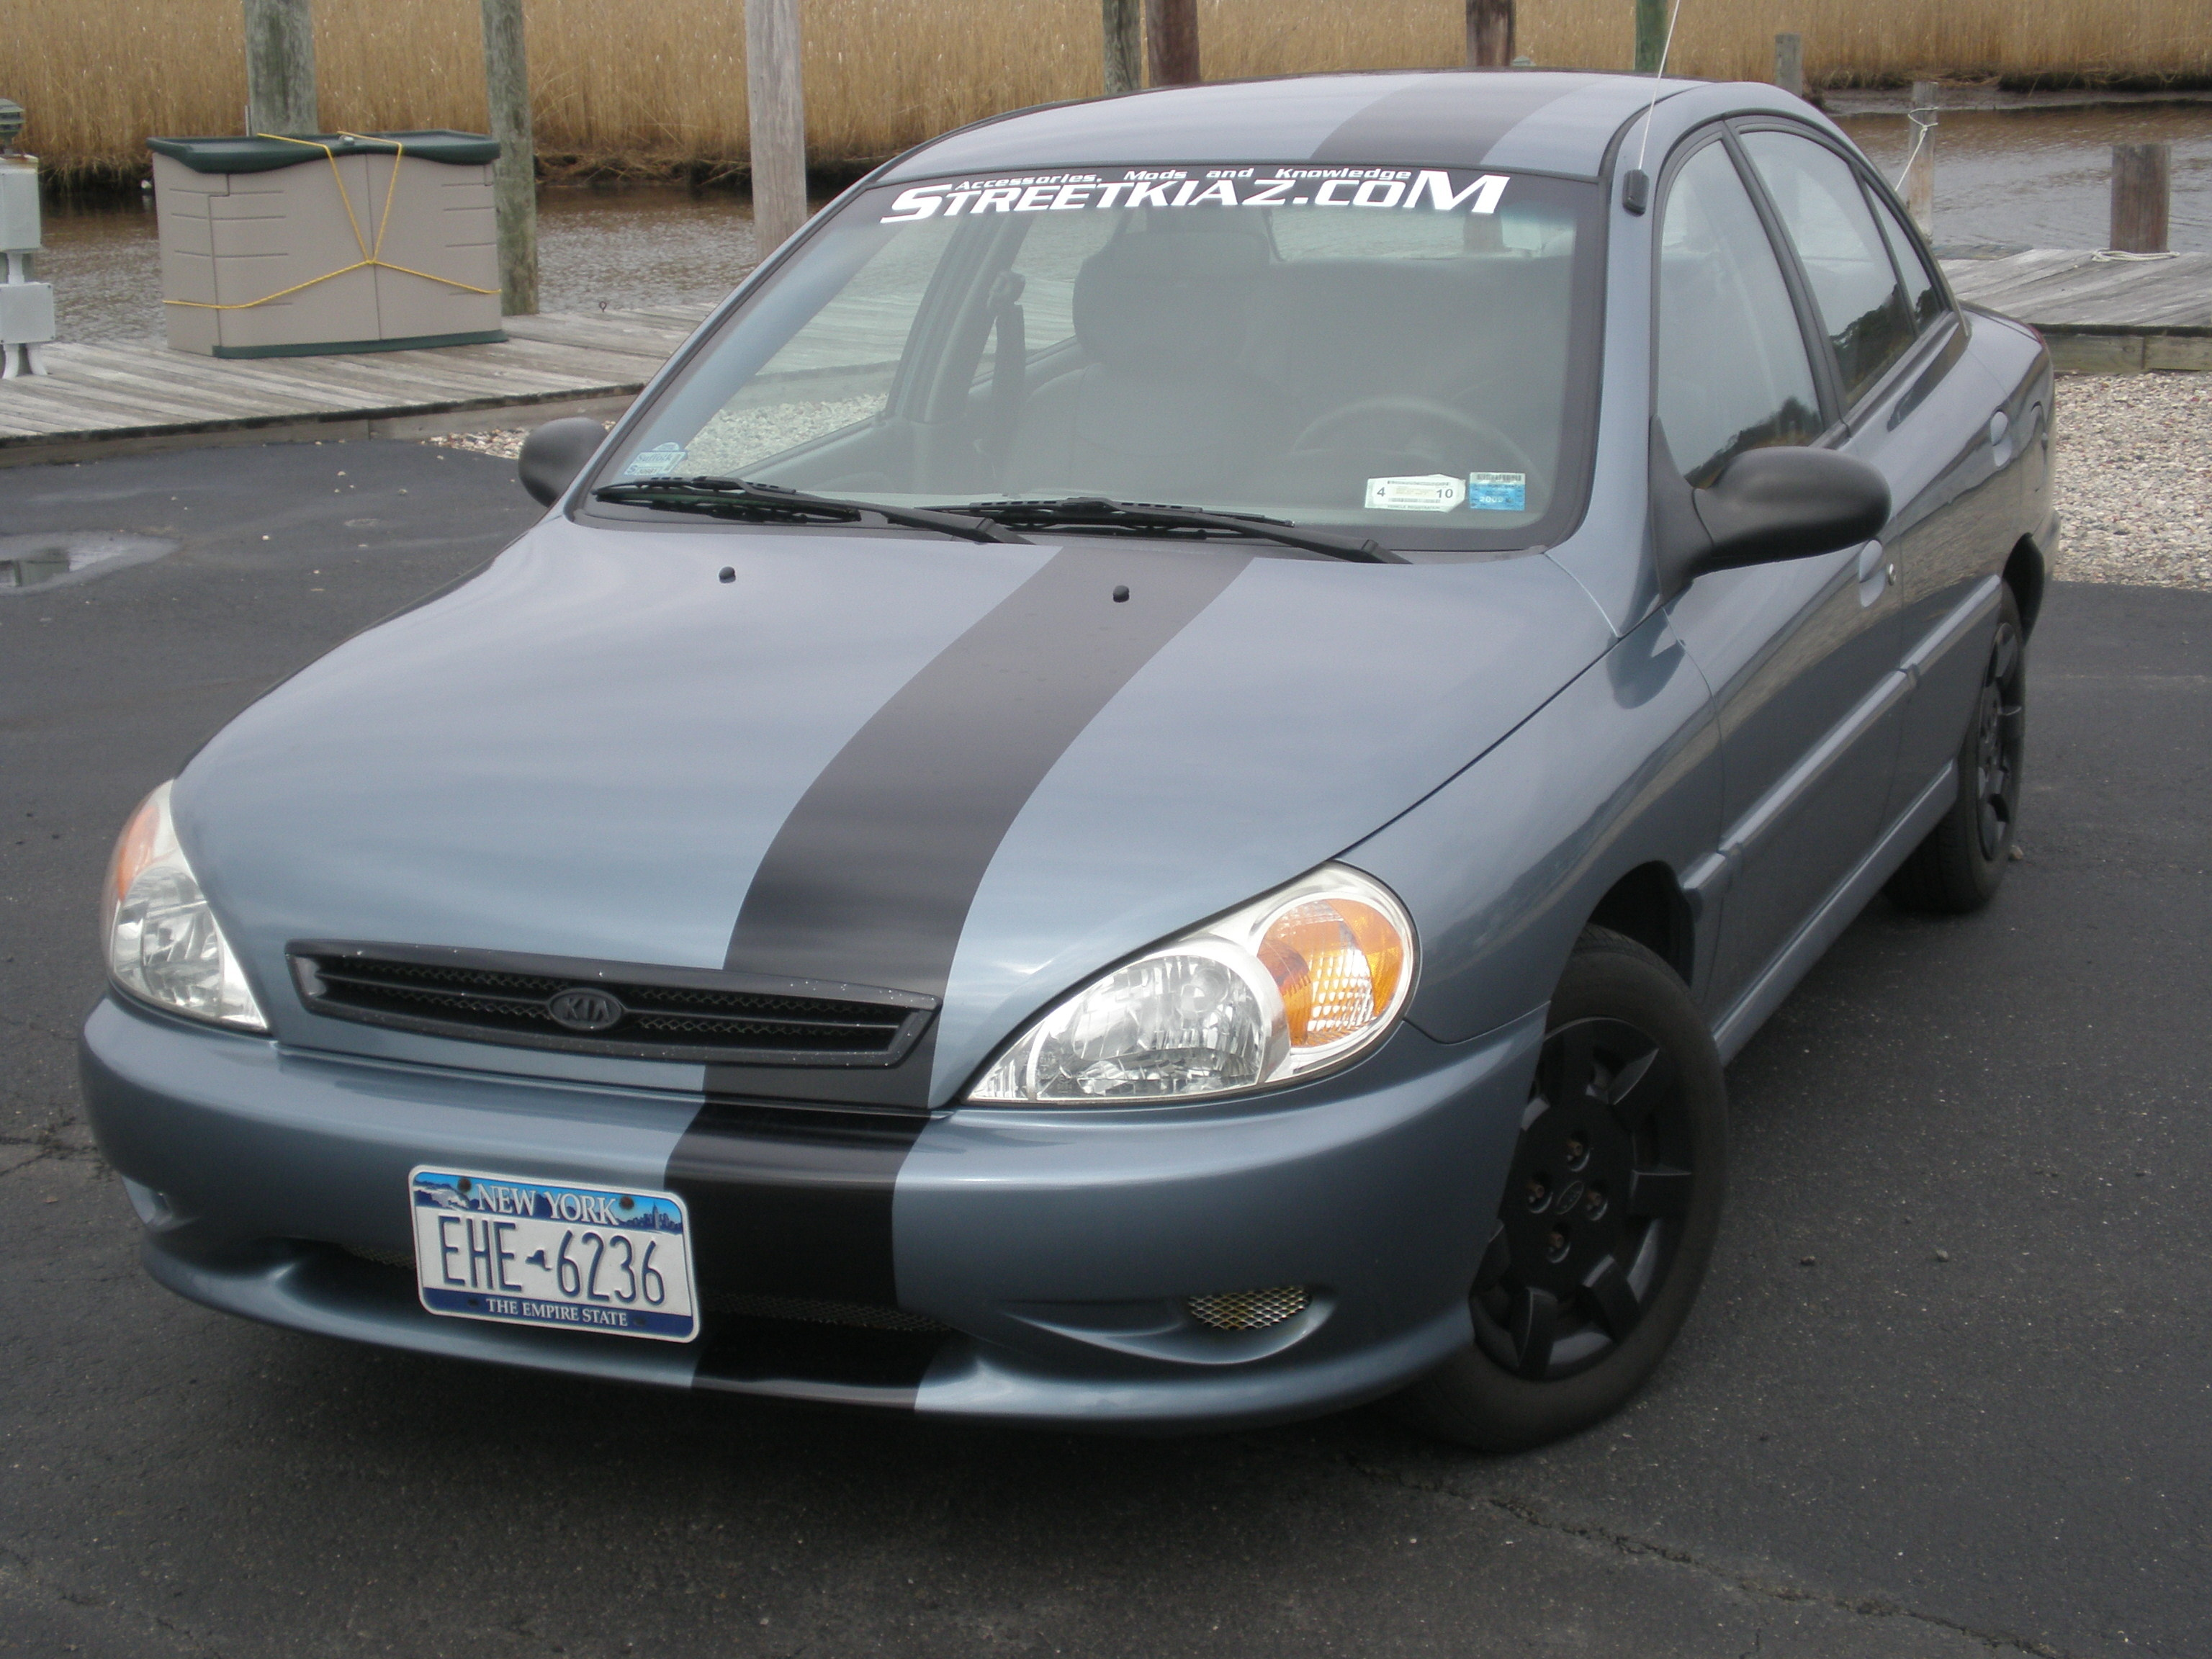 m1n1k1a 39 s 2002 kia rio in east patchogue ny. Black Bedroom Furniture Sets. Home Design Ideas